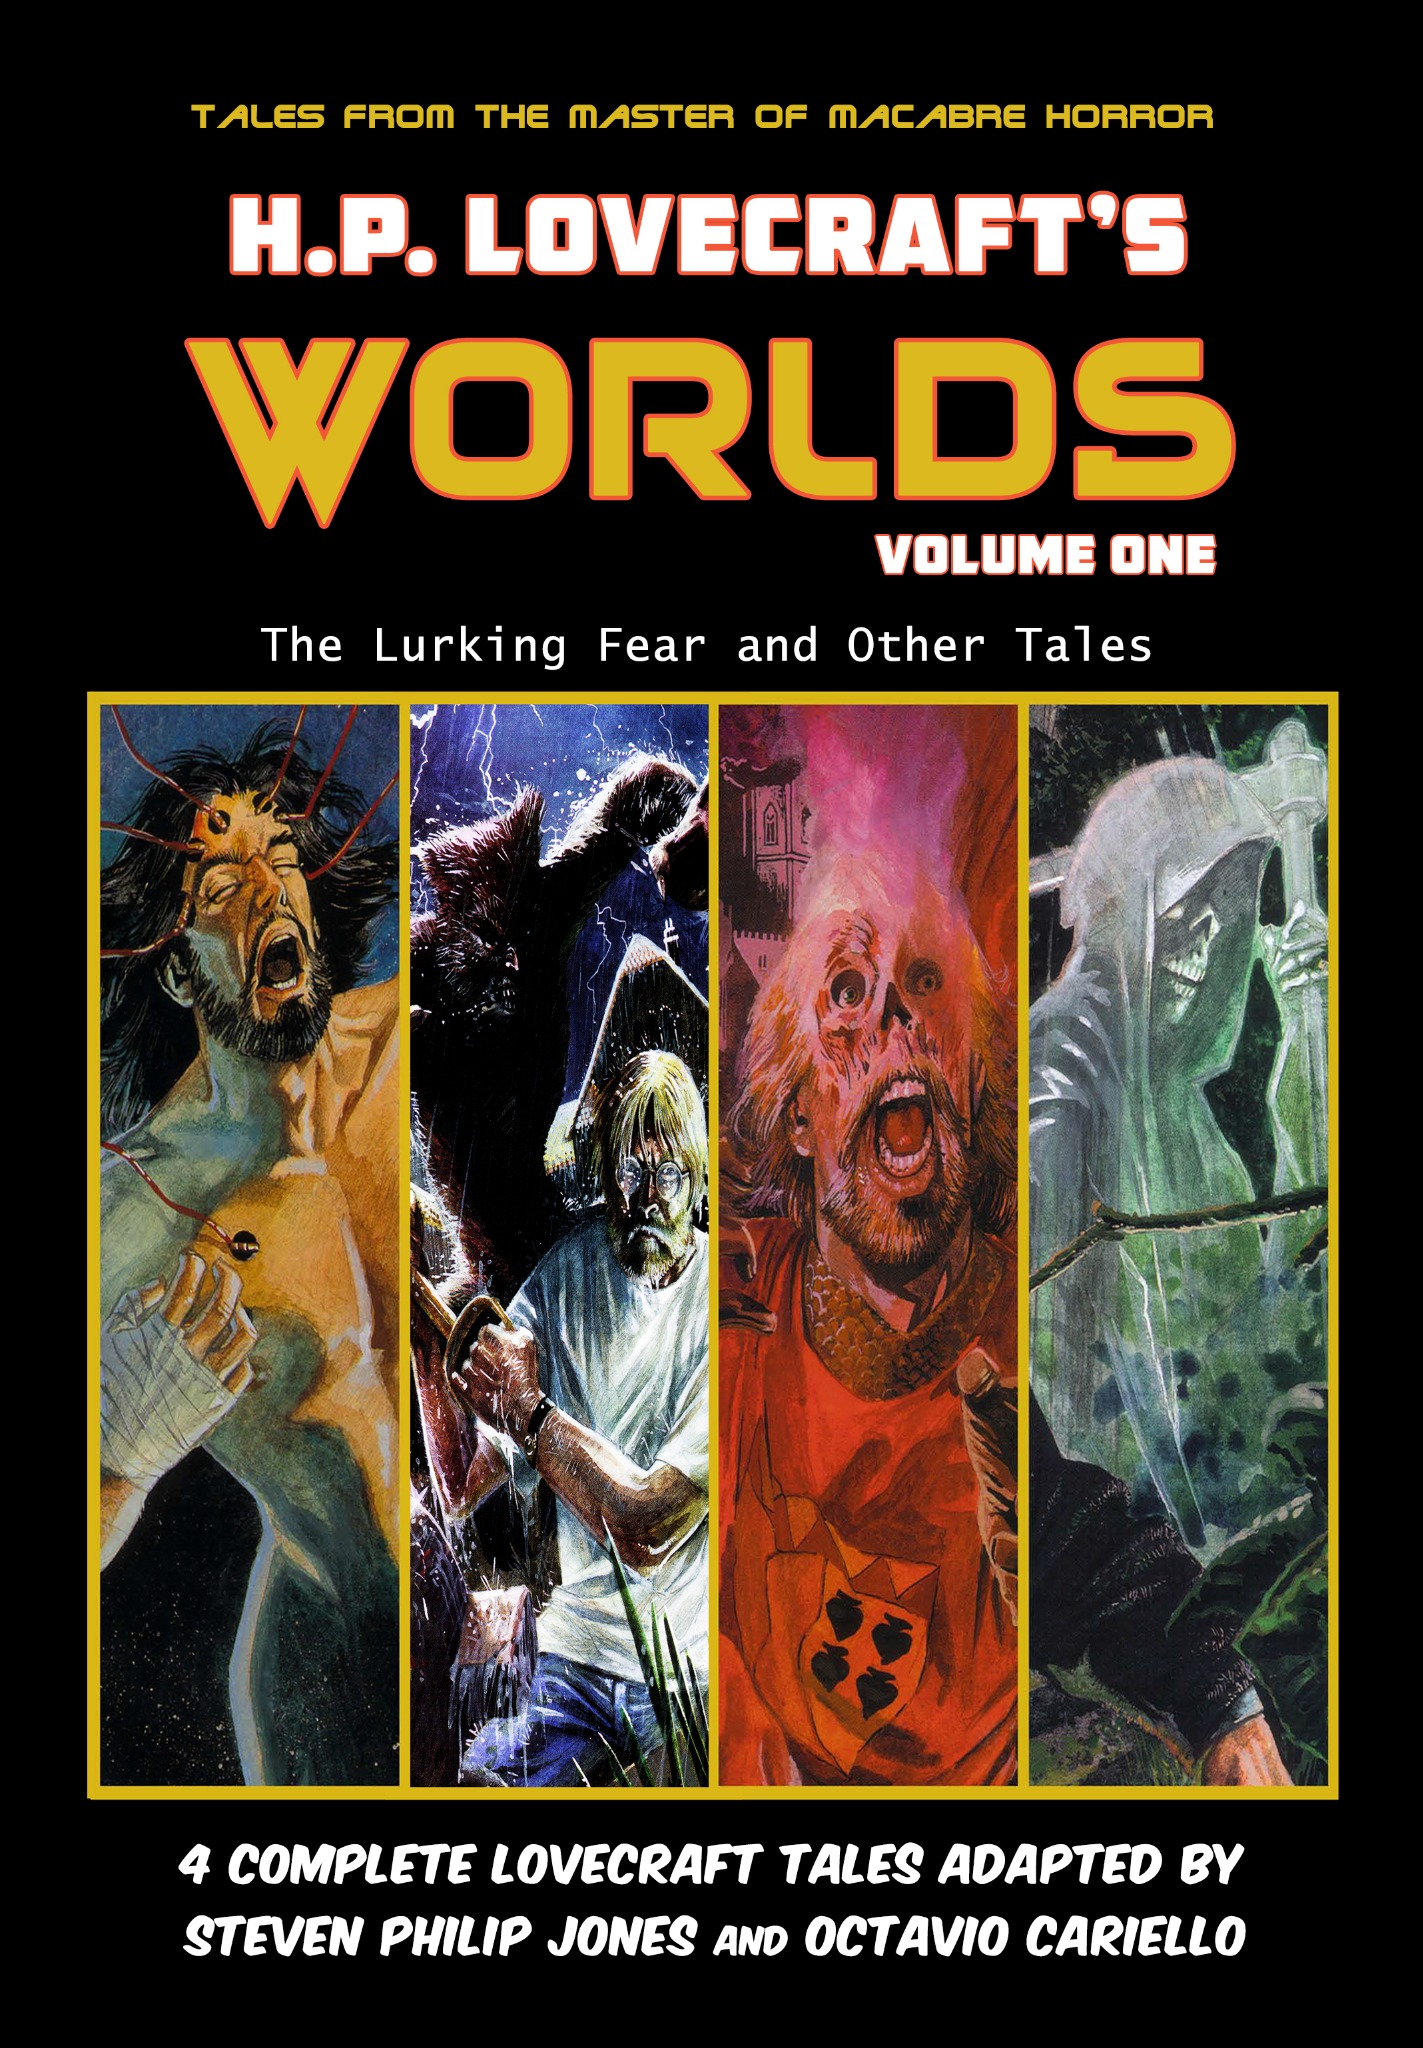 H.P. Lovecraft's Worlds - Volume 1: The Lurking Fear and Other Tales